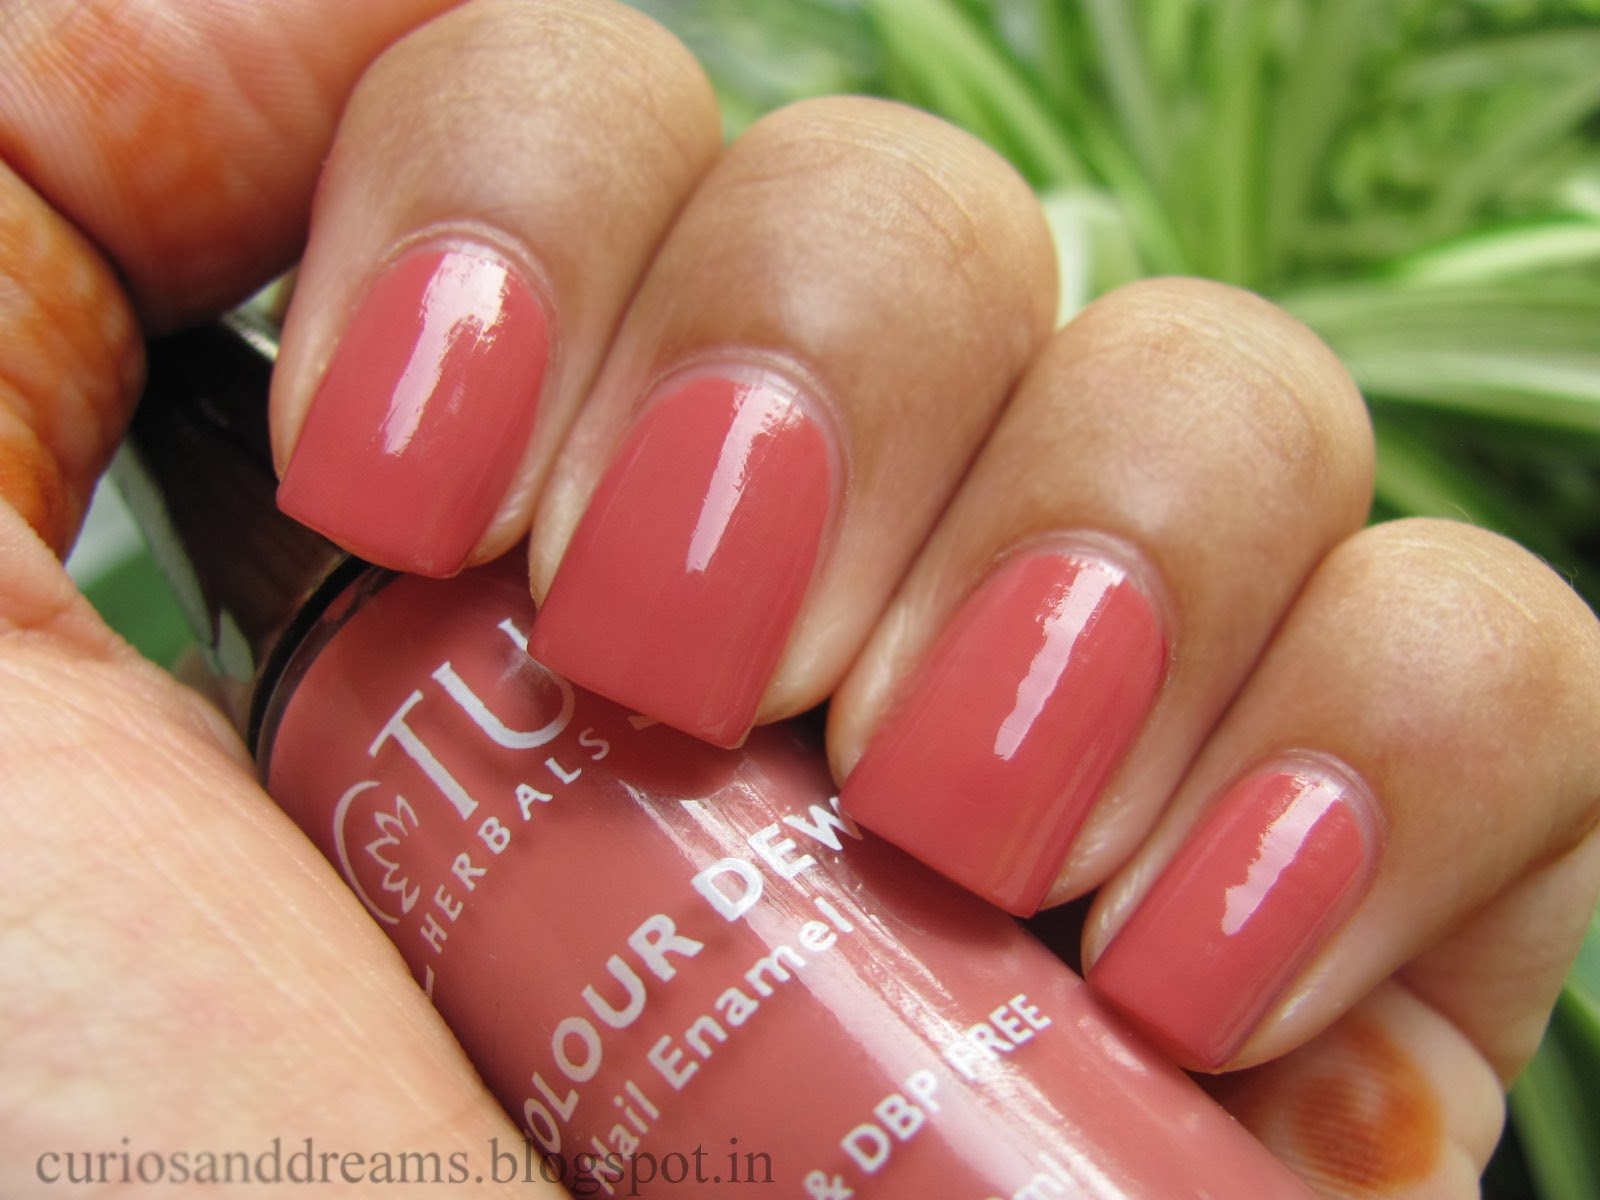 Lotus Nail Polish Candy Drop Review Swatch